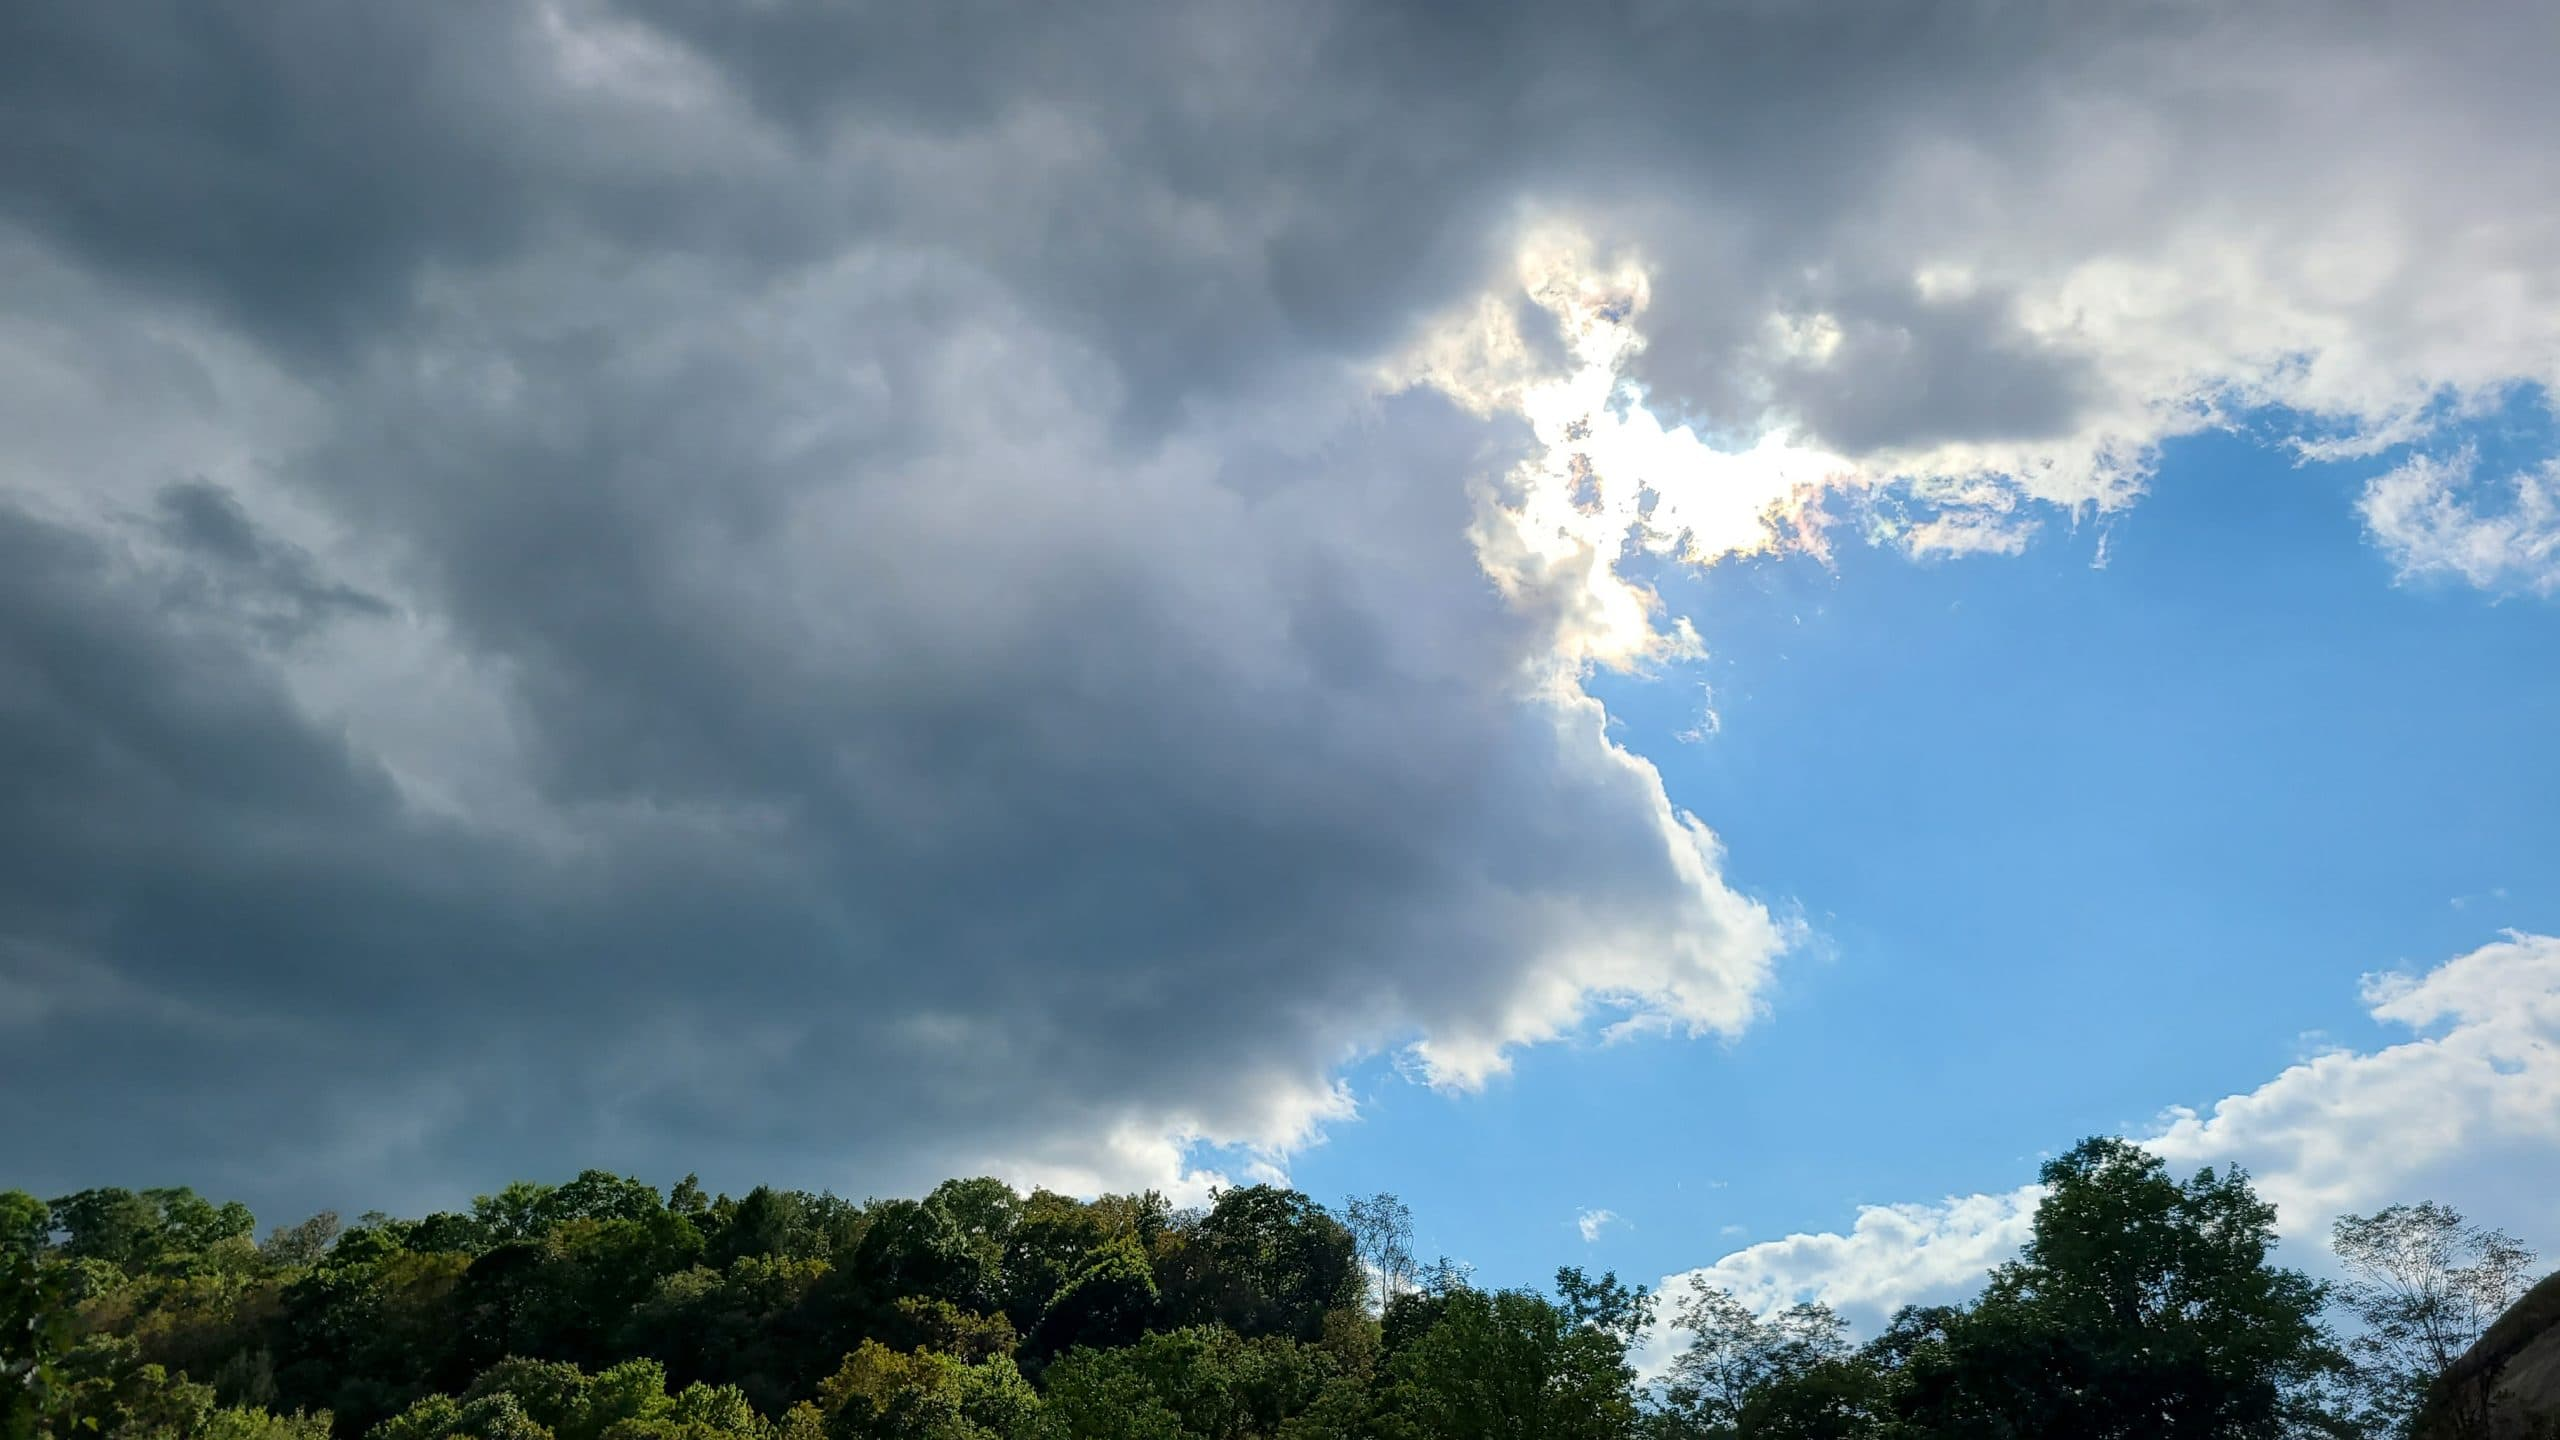 An ominous-looking dark cloud covers an otherwise sunny blue sky.